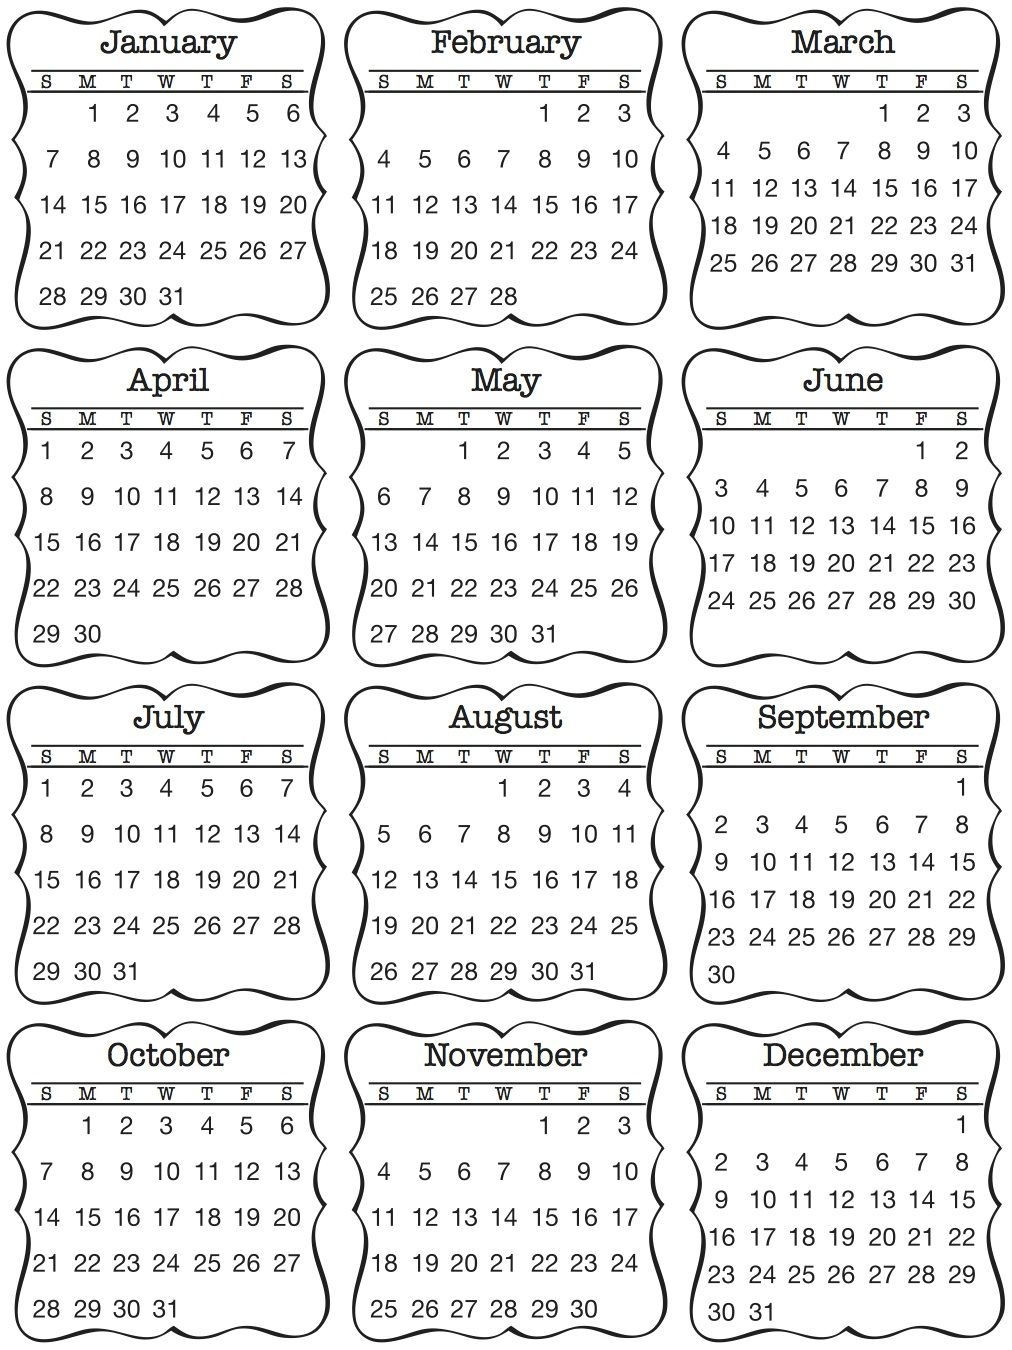 Srm48024-Discontinued:mini Calendar Sticker / Decorativ